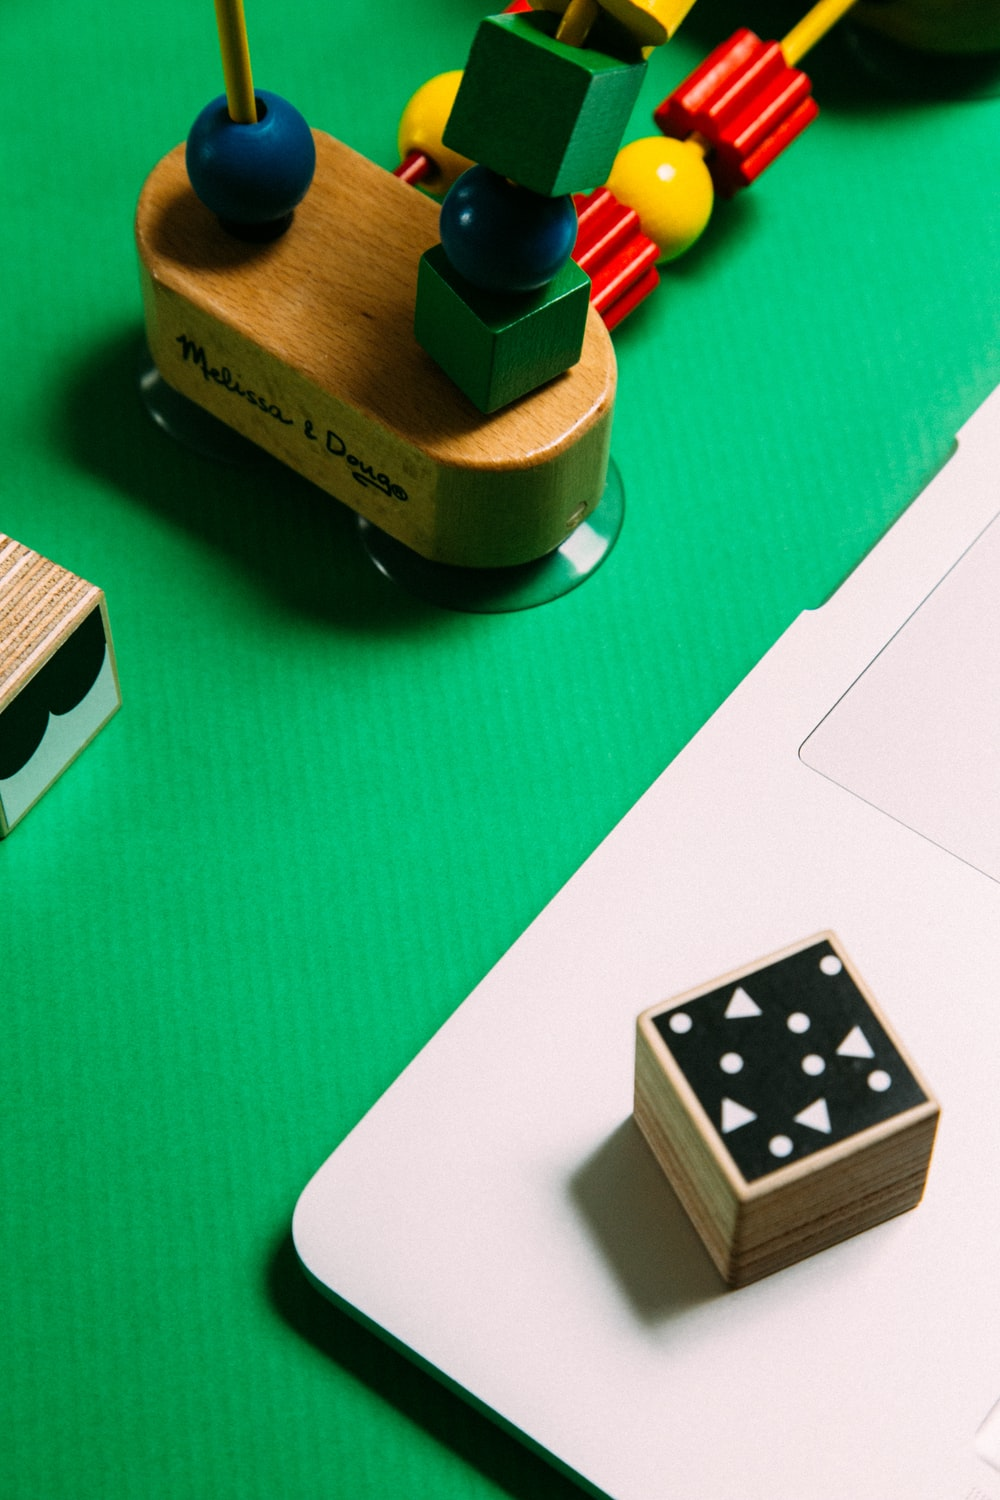 white and black dice on green wooden table